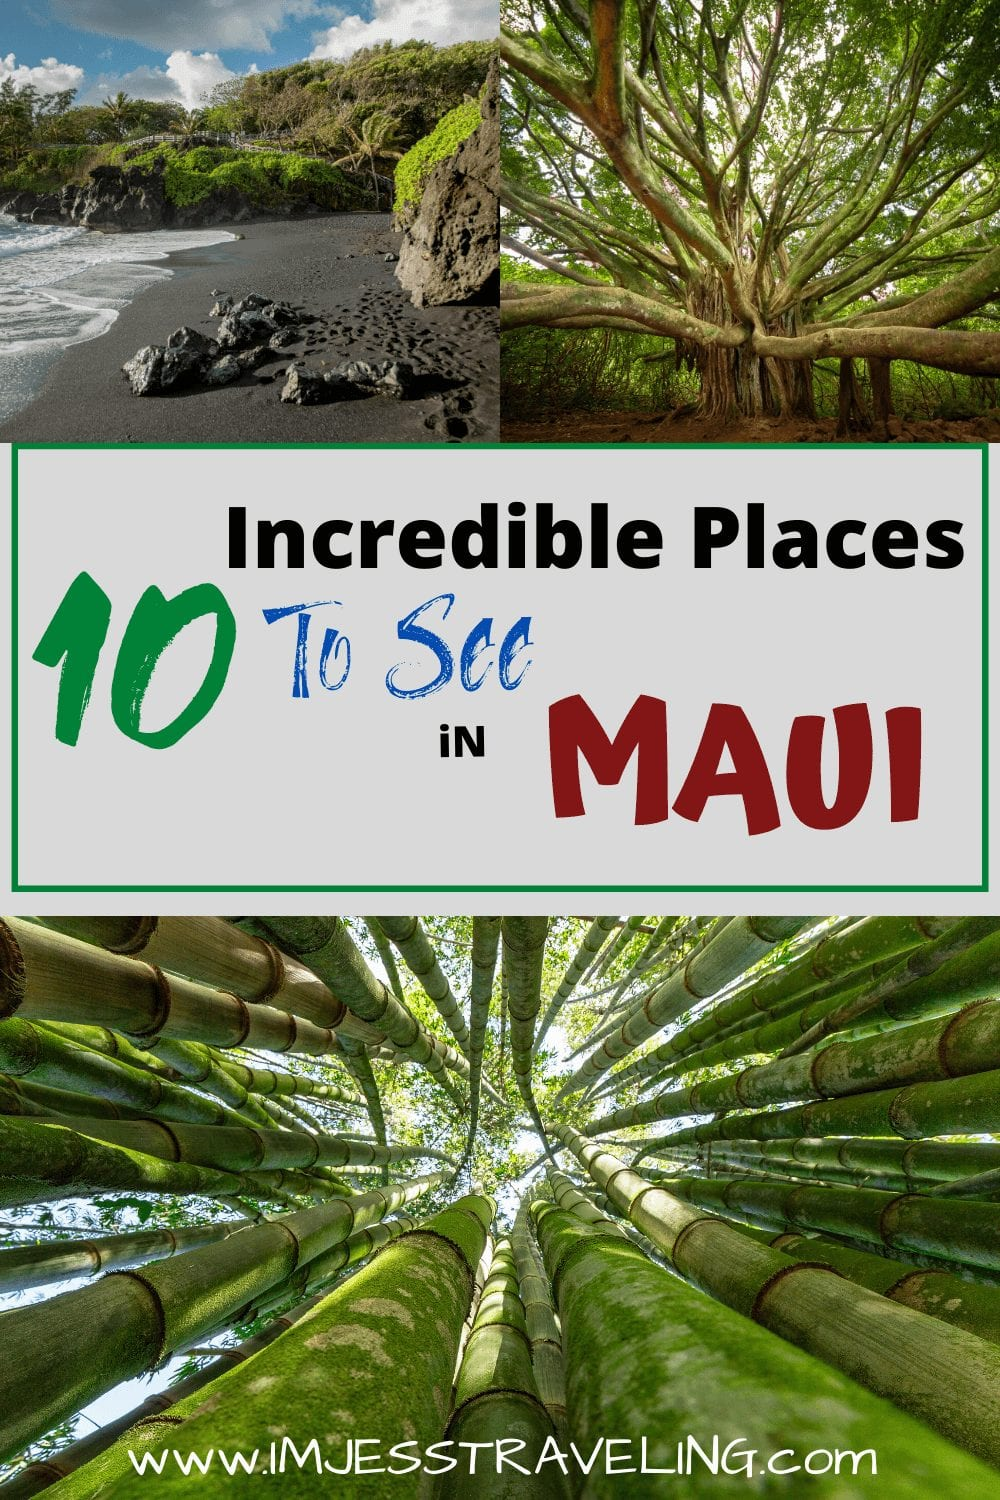 10 Incredible places to see in Maui with I'm Jess Traveling